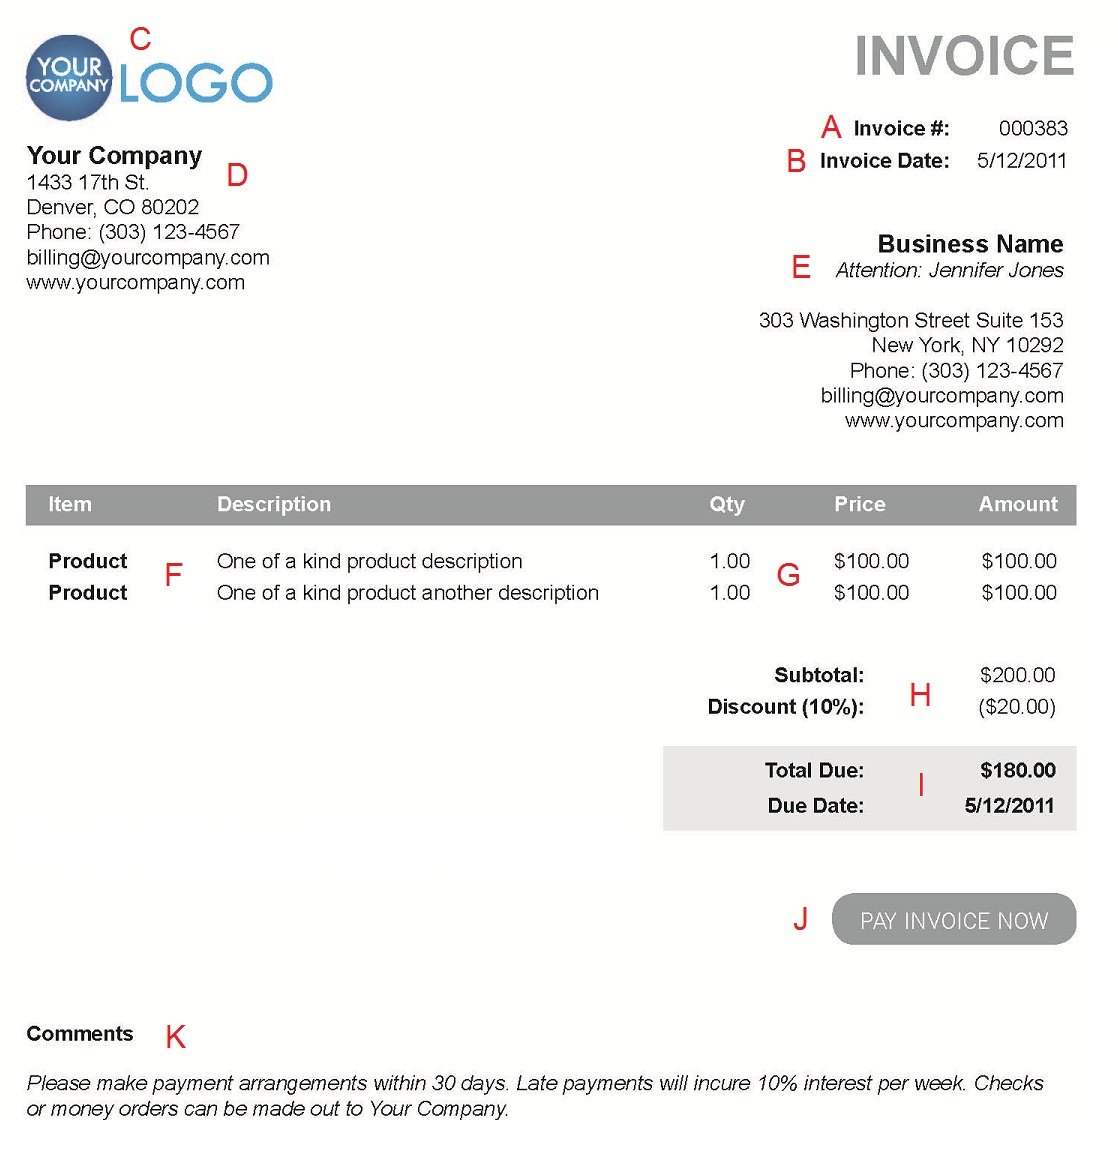 Pigbrotherus  Mesmerizing The  Different Sections Of An Electronic Payment Invoice With Engaging A  With Adorable Send Invoice Also Invoice Go In Addition Invoice Template Open Office And How To Do Invoices As Well As Invoice Maker Pro Additionally Downloadable Invoice Template From Paysimplecom With Pigbrotherus  Engaging The  Different Sections Of An Electronic Payment Invoice With Adorable A  And Mesmerizing Send Invoice Also Invoice Go In Addition Invoice Template Open Office From Paysimplecom